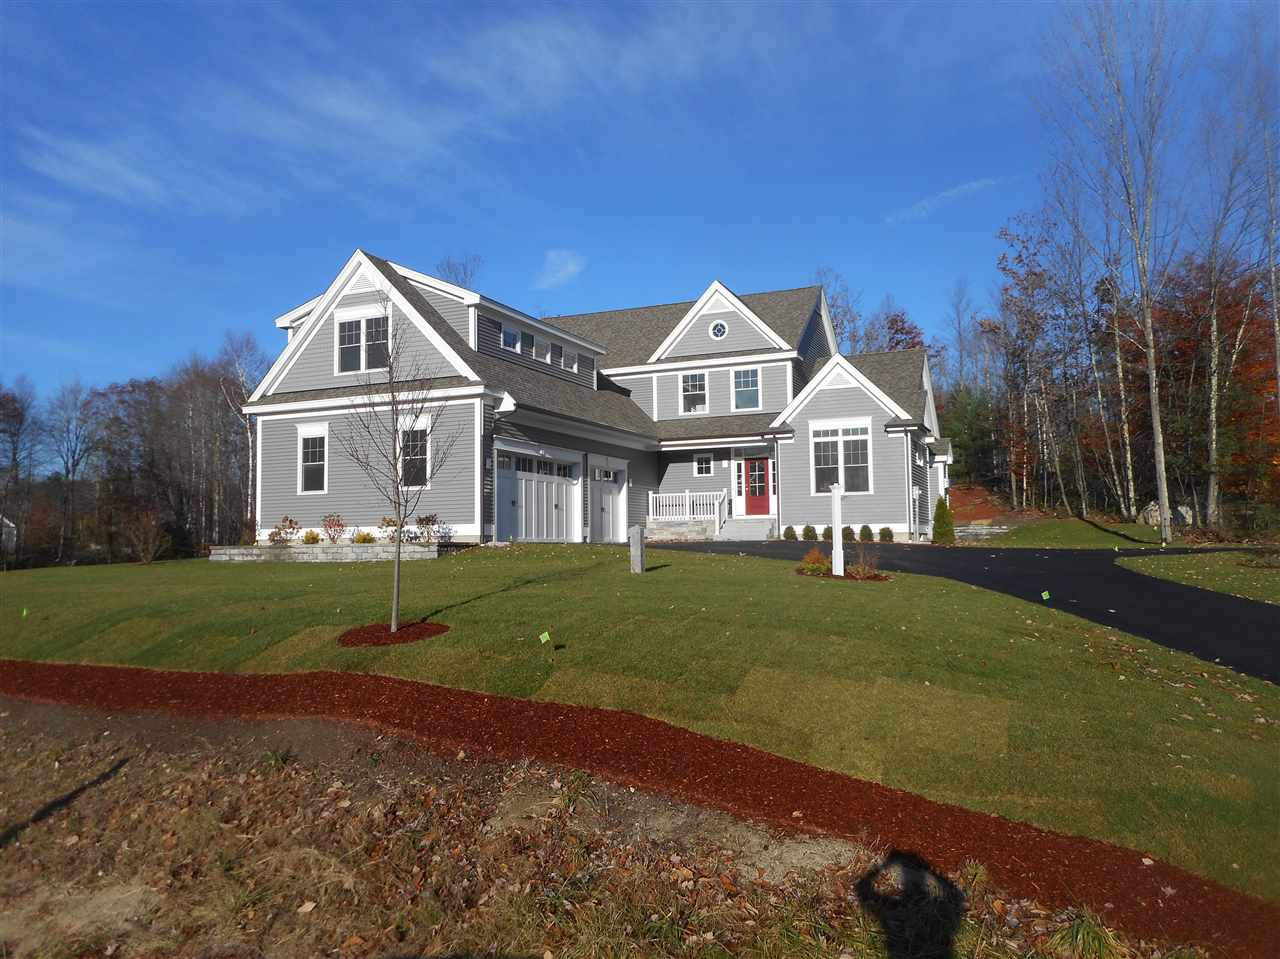 Photo of 31 Settlers Court Bedford NH 03110